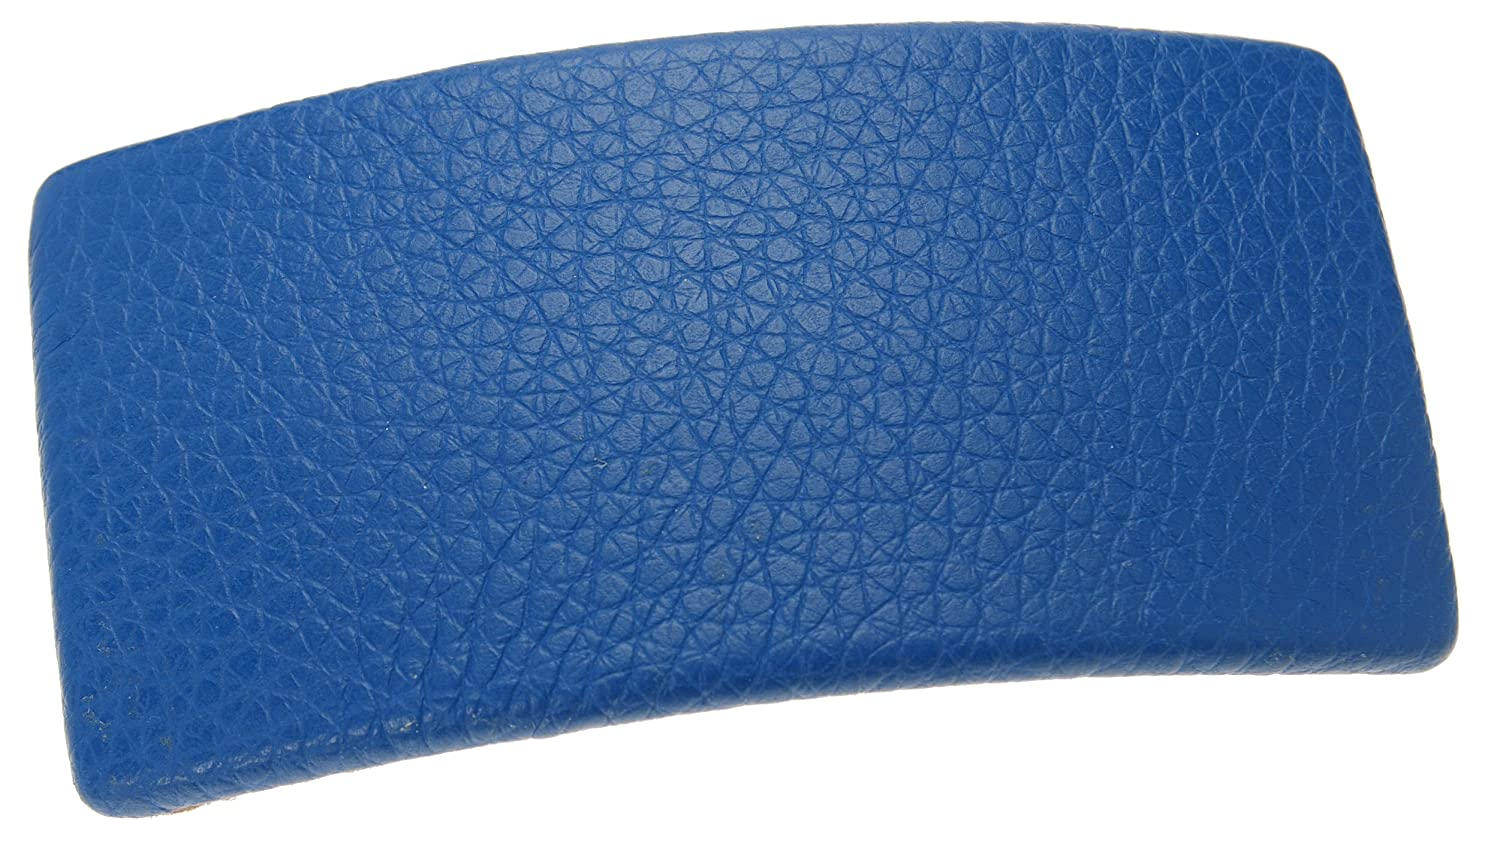 Luxury goods L. Erickson USA Genuine Leather Large Barrette - Rectangle New product type Cobal